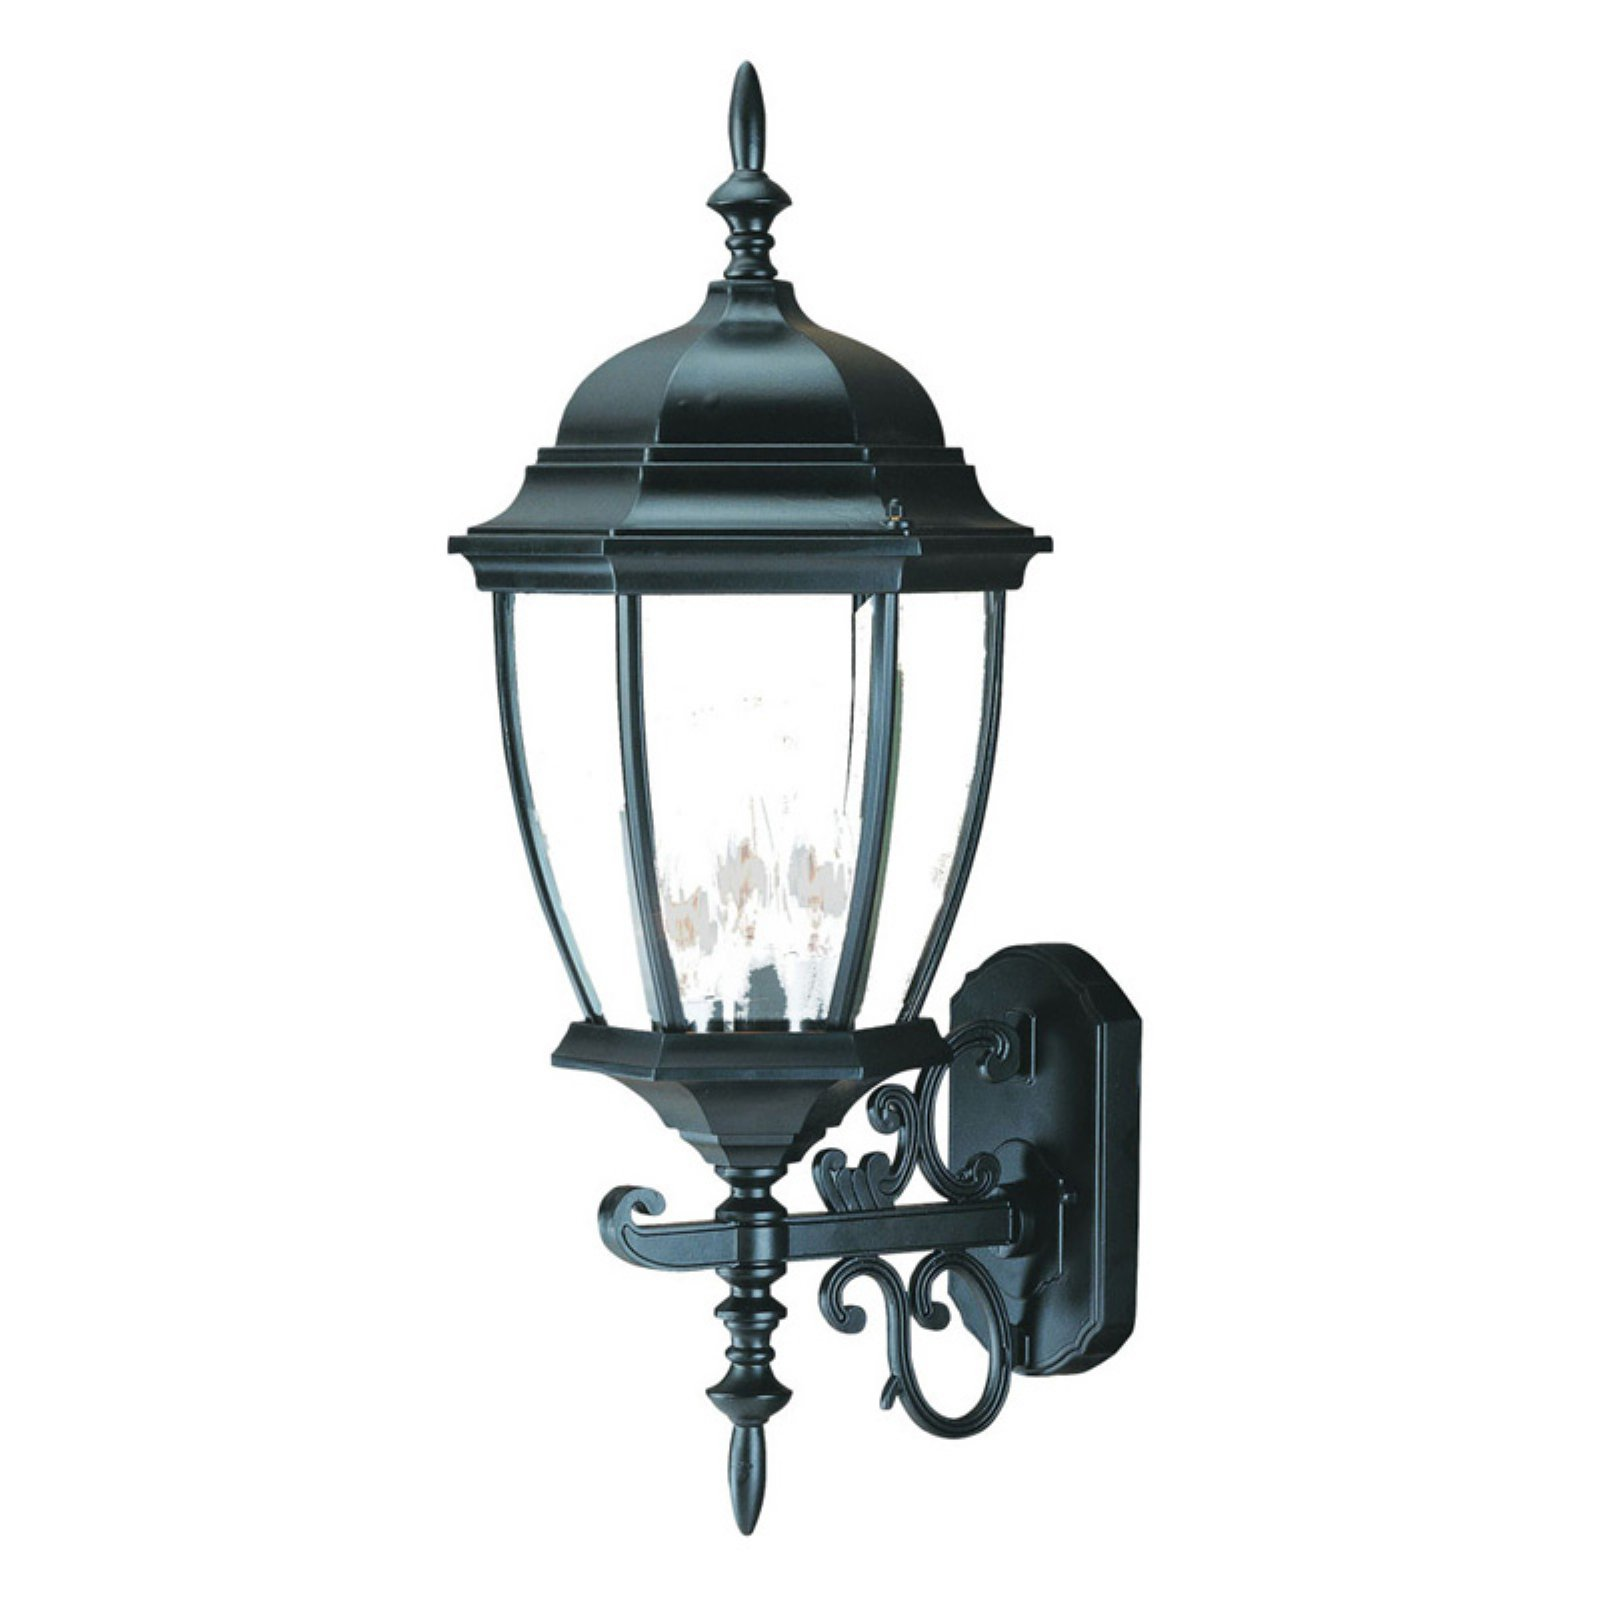 Acclaim Lighting Wexford 9.25 in. 3 Light Outdoor Wall Mount Light Fixture